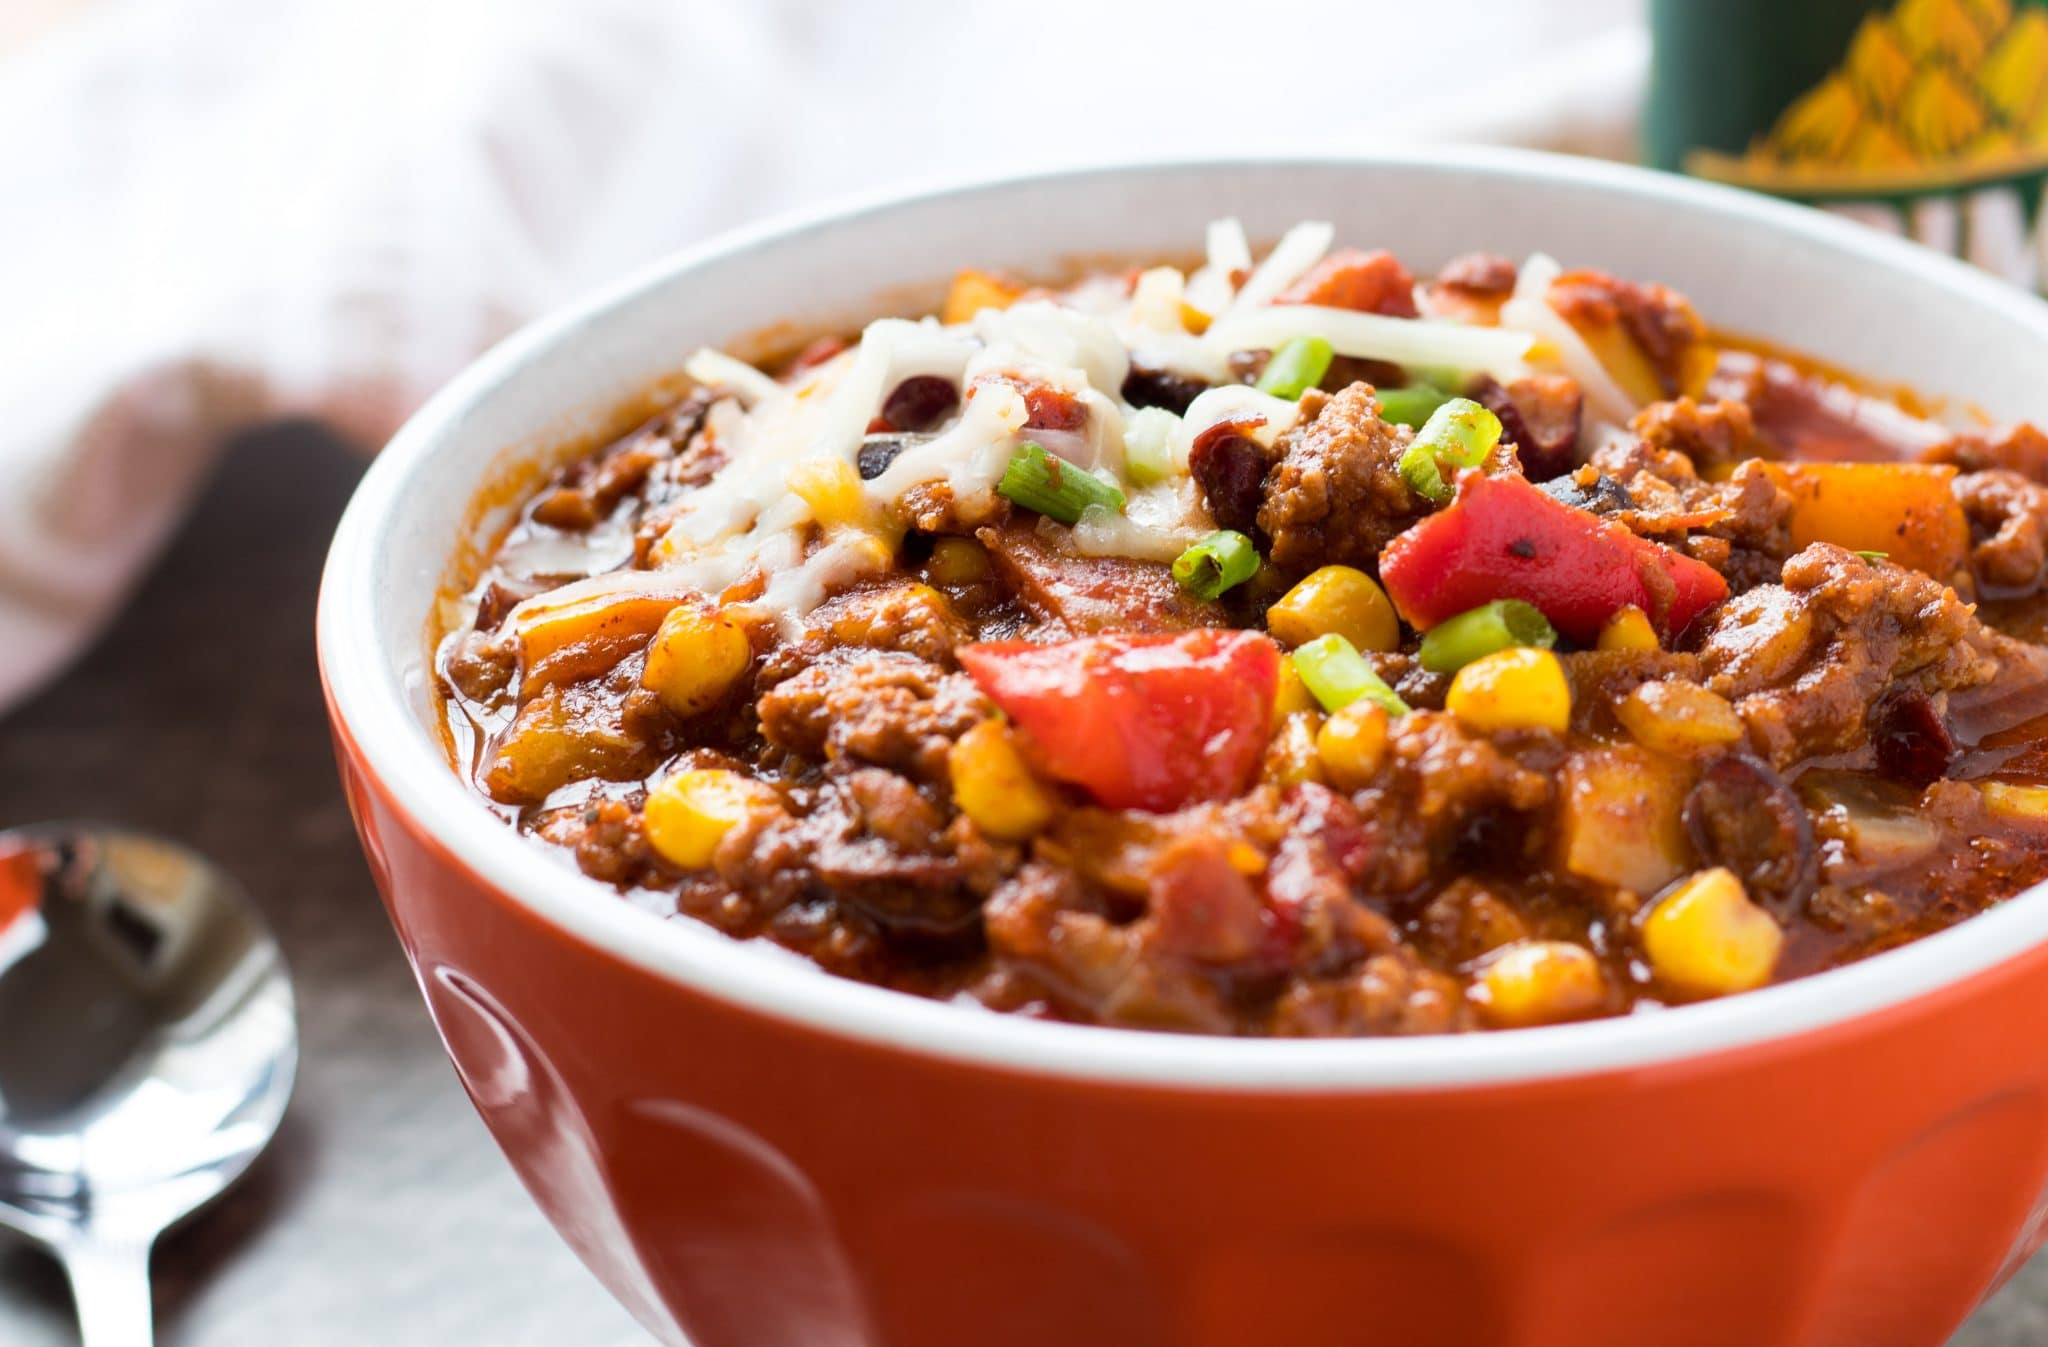 This Loaded Slow Cooker Chili is loaded with ground beef, beans, corn, rainbow bell peppers and spices. Sweetened with honey. Tasty game day food!